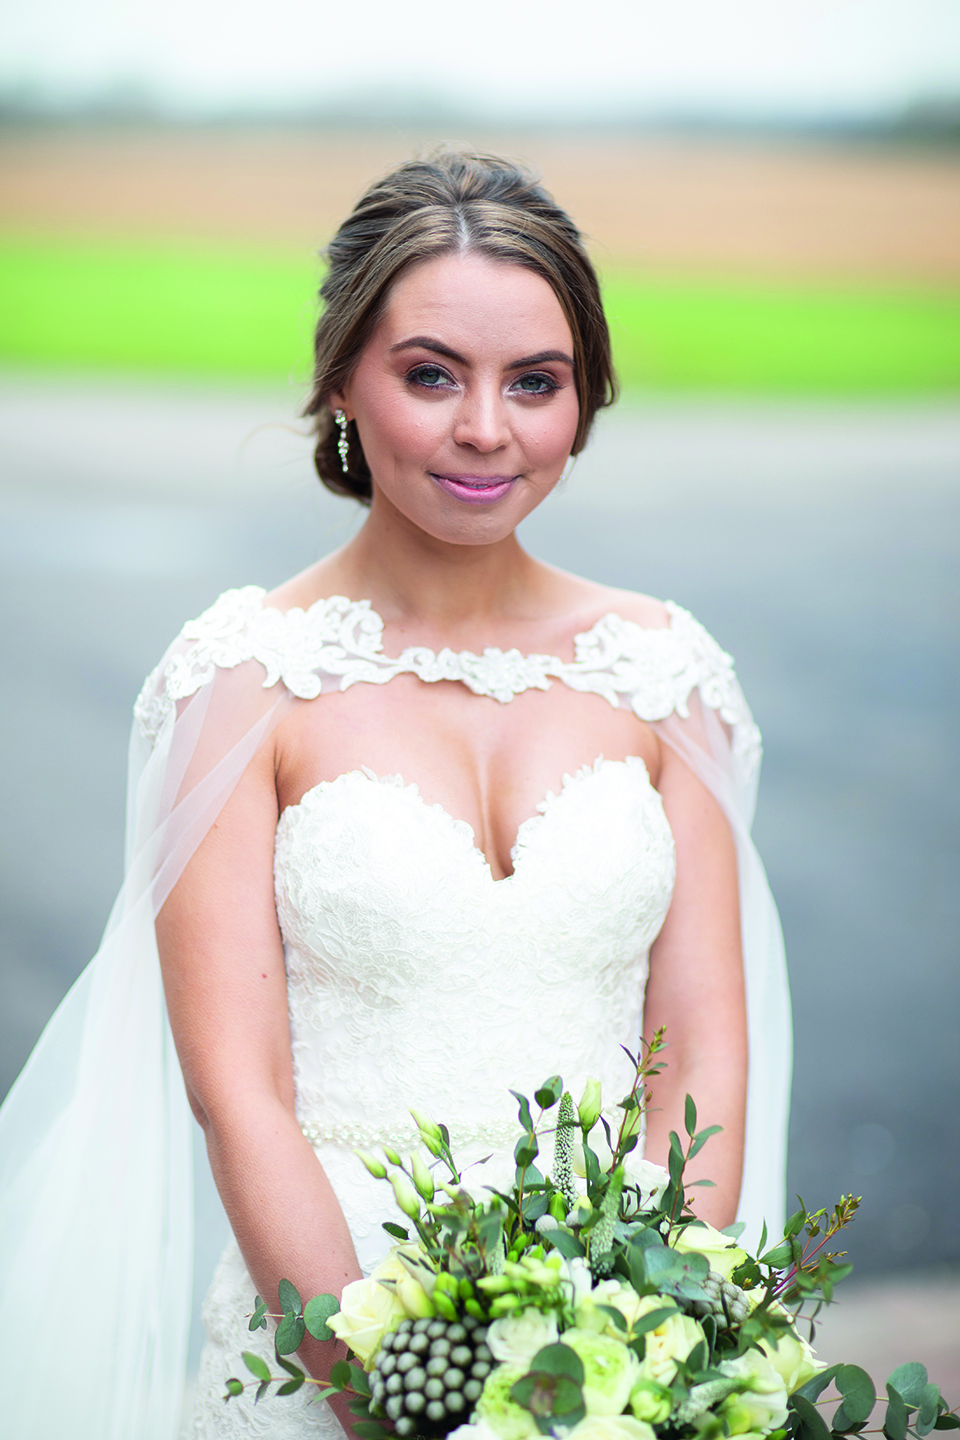 For her spring wedding at Bassmead Manor Barns the bride chose soft wedding makeup for a natural look